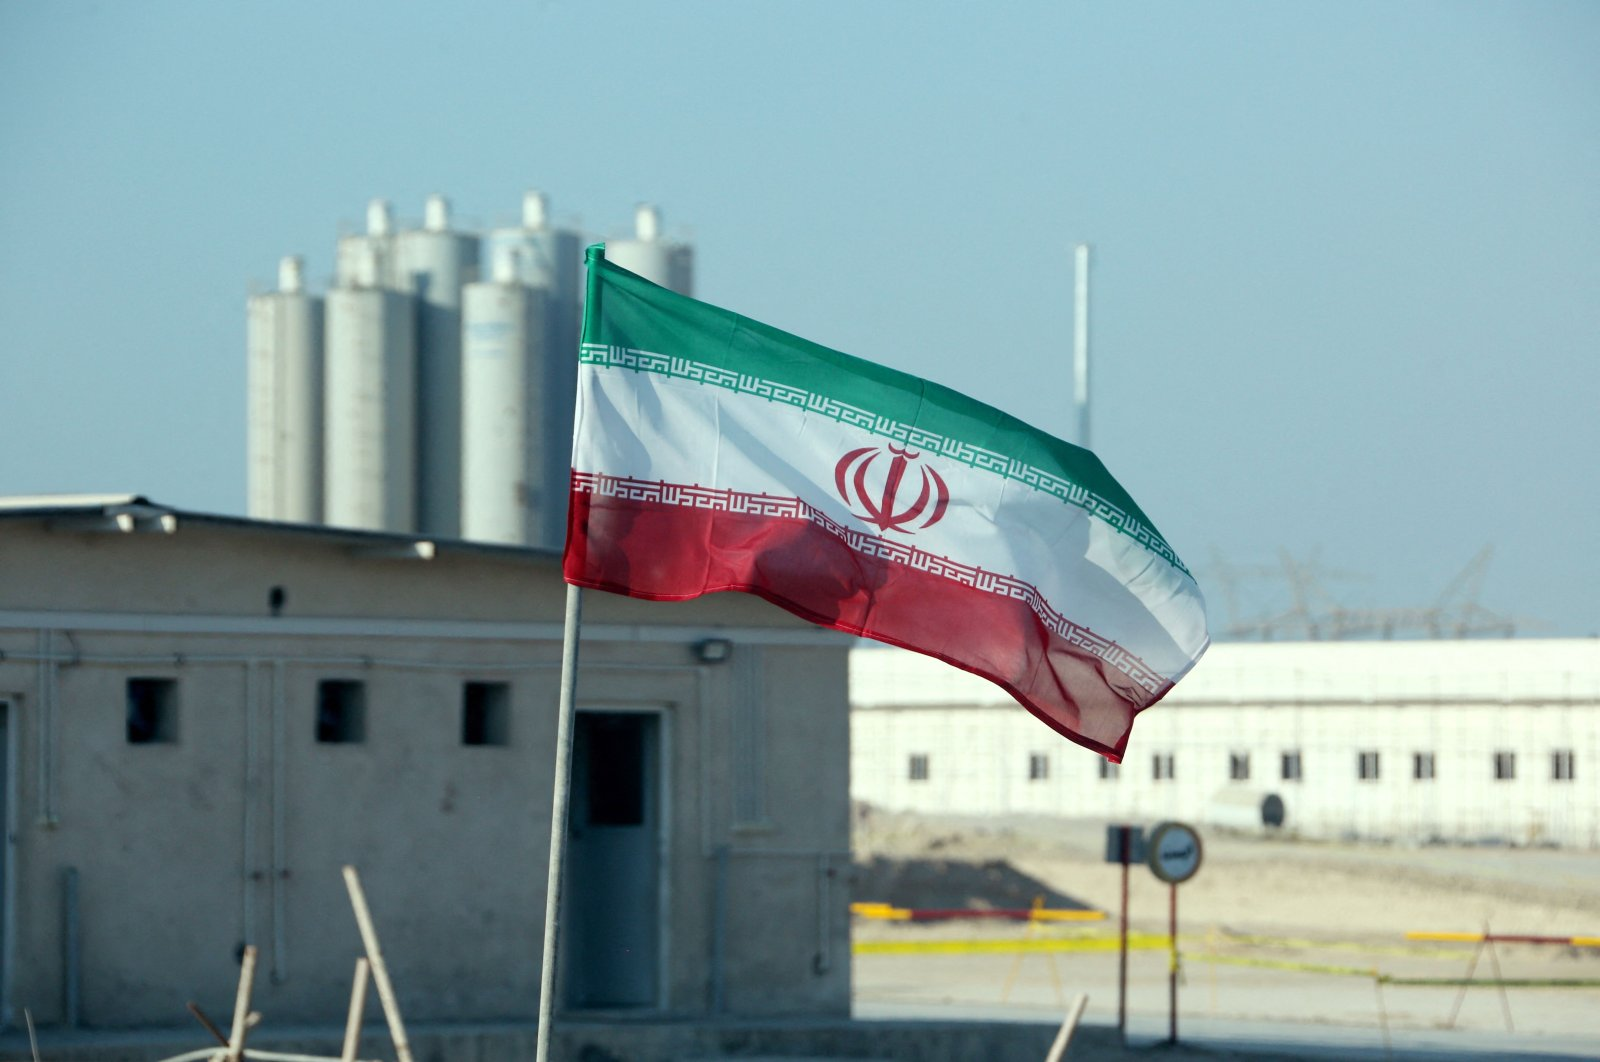 An Iranian flag in Iran's Bushehr nuclear power plant, during an official ceremony, to kickstart works on a second reactor at the facility, in Bushehr, southern Iran, on Nov. 10, 2019. (AFP Photo)